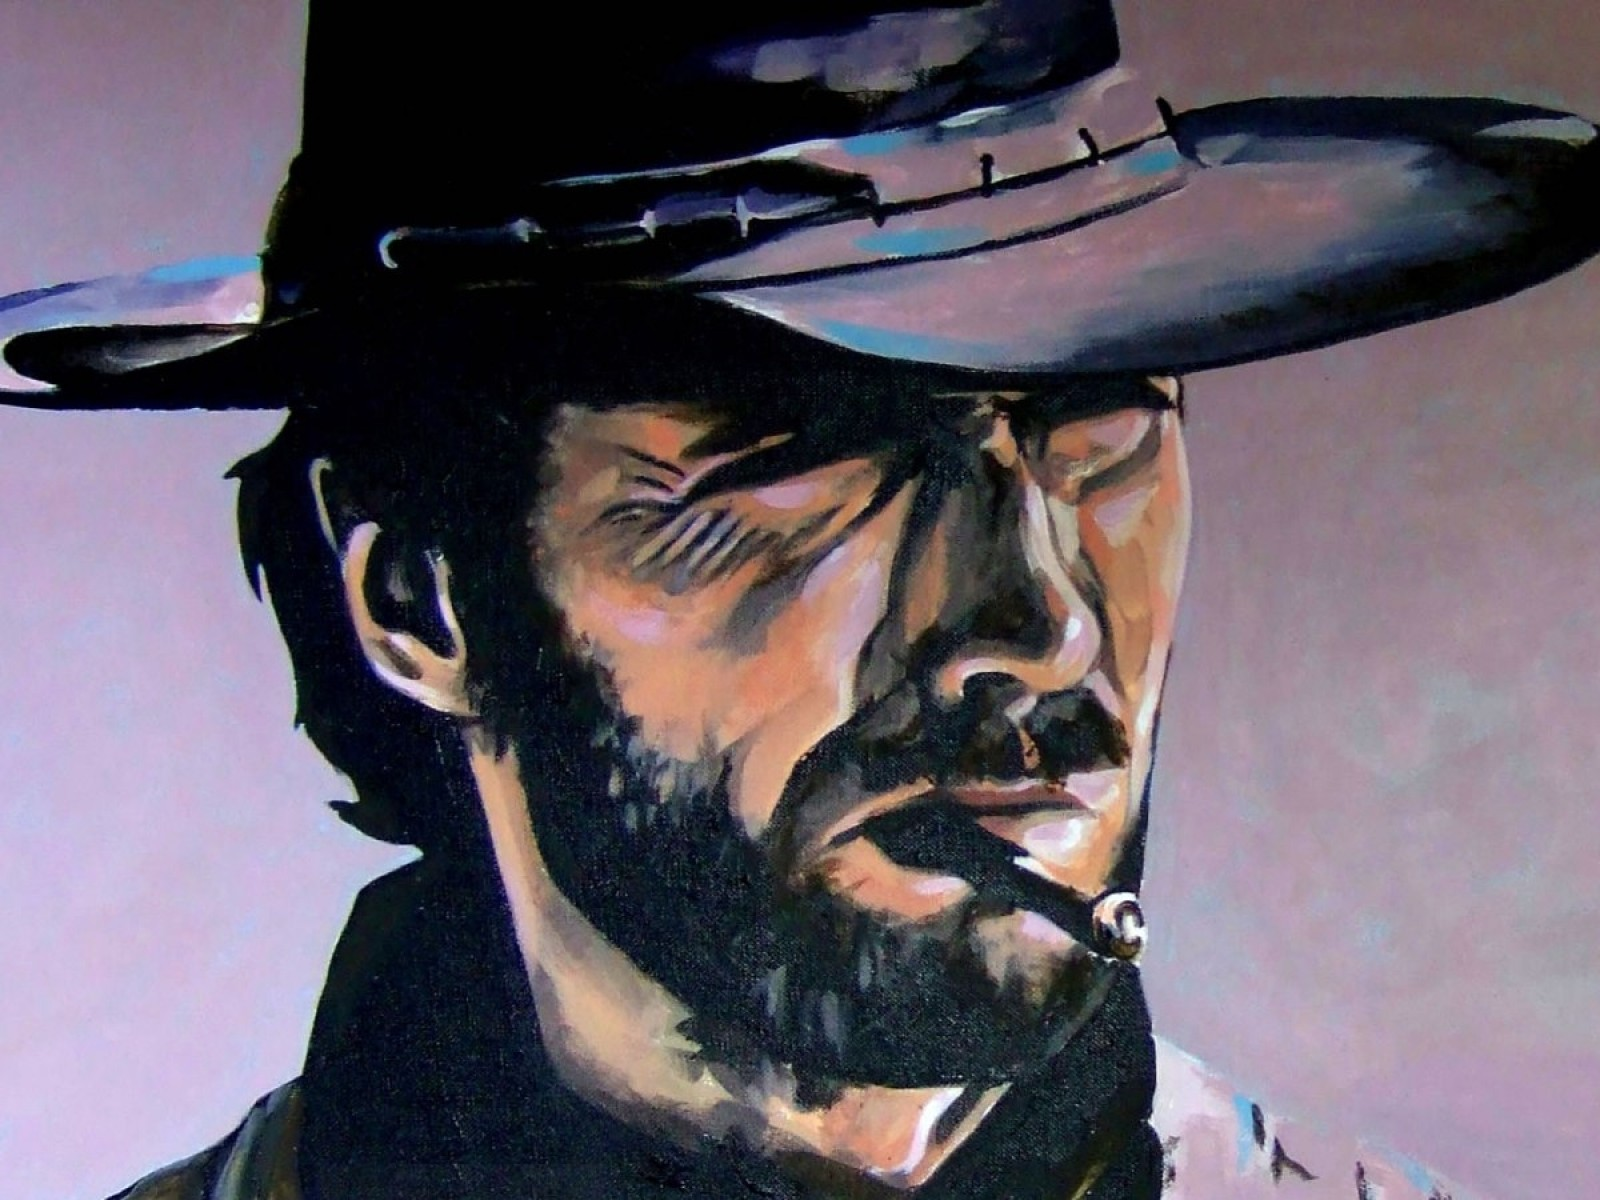 Clint Eastwood Wallpapers High Resolution and Quality Download